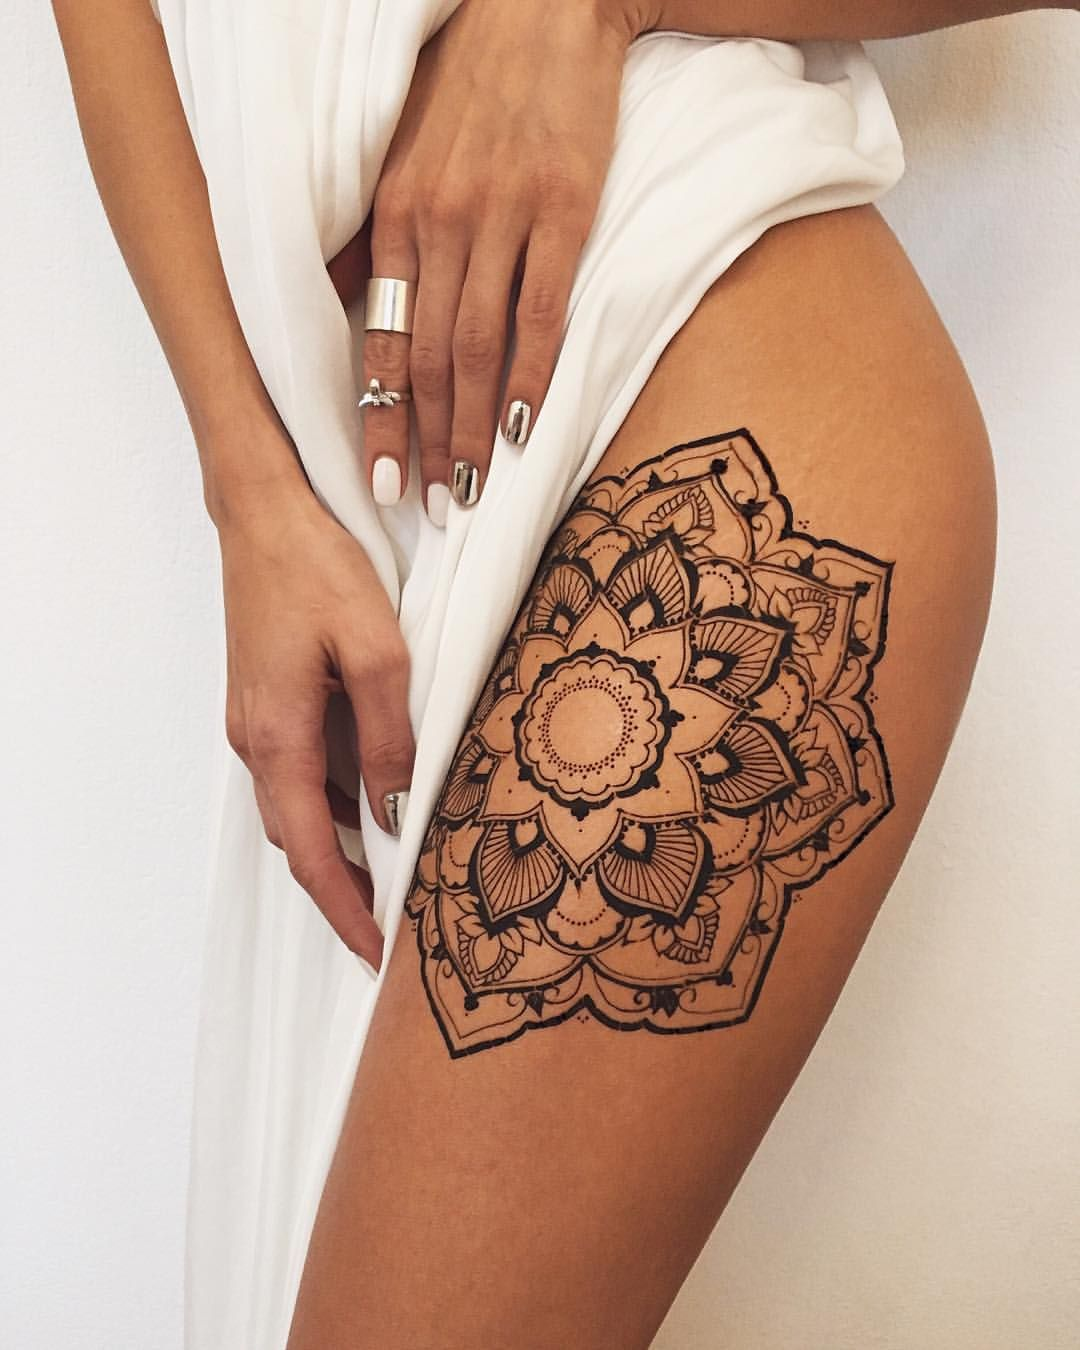 veronica krasovska on instagram mandala morning perfect start of a new week floral henna. Black Bedroom Furniture Sets. Home Design Ideas